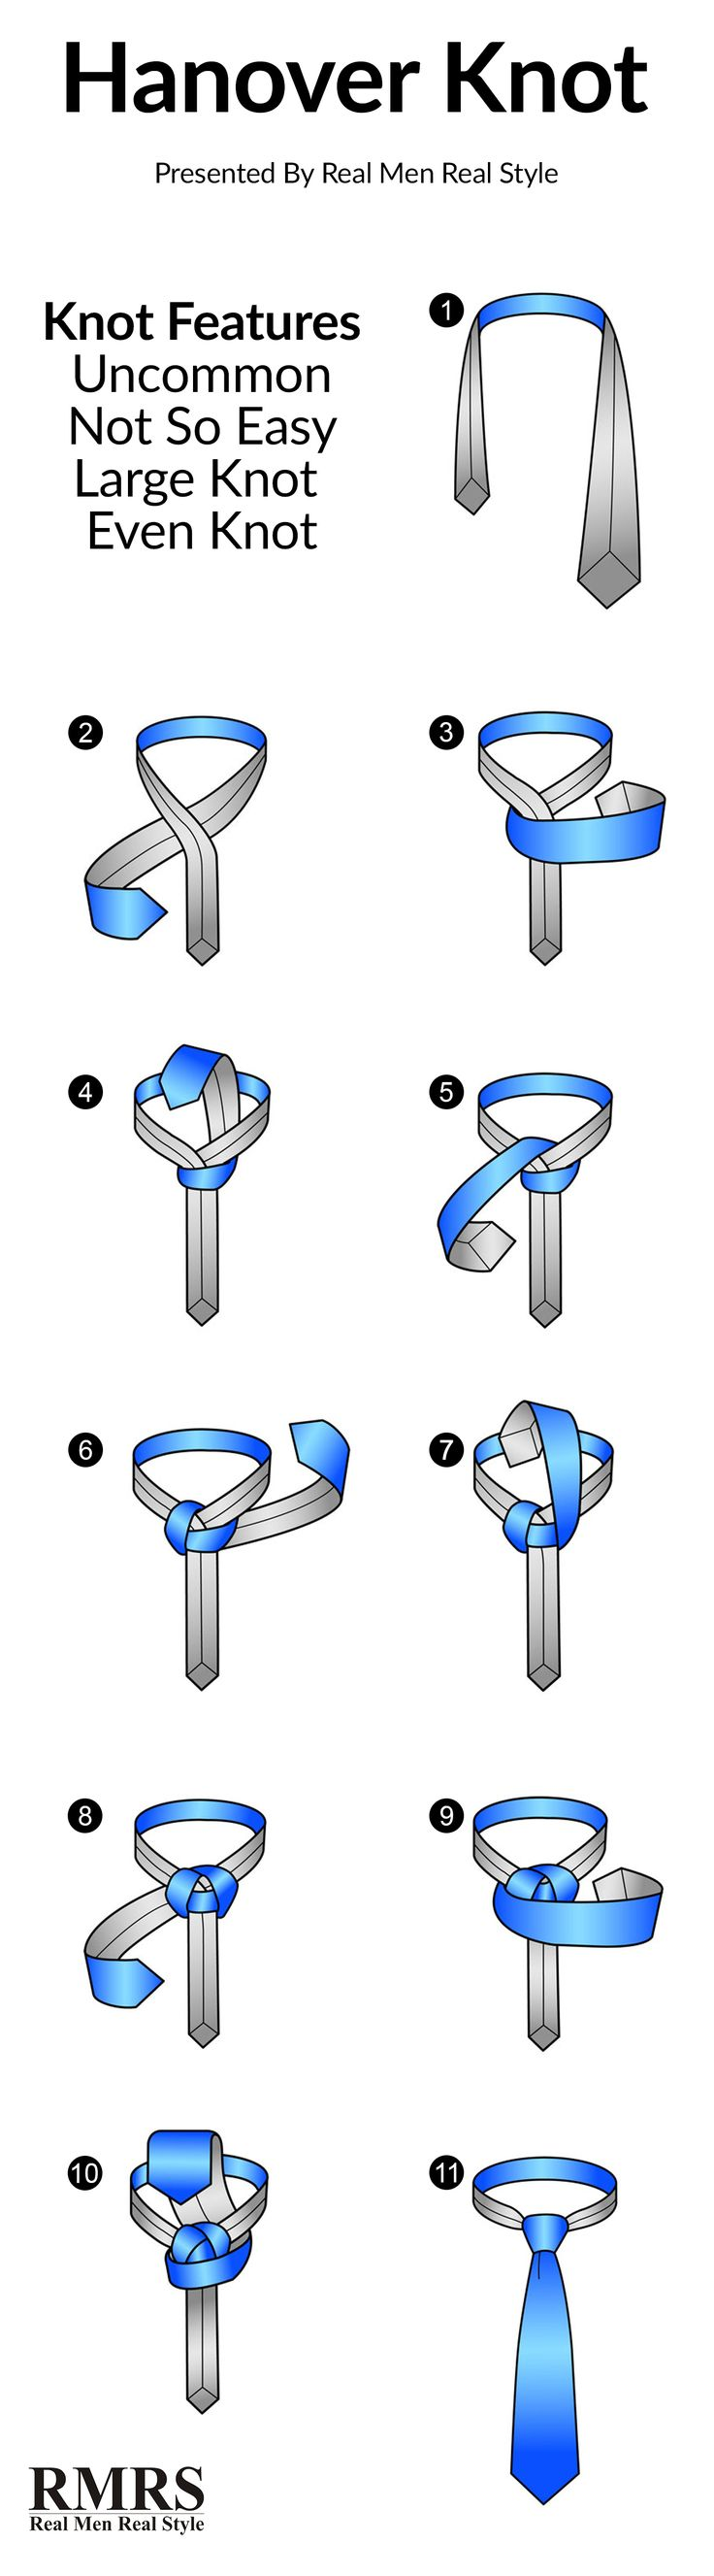 How To Tie The Hanover Knot Infographic  View Signature Designer Style Cufflinks at https://premiumcuffs.com